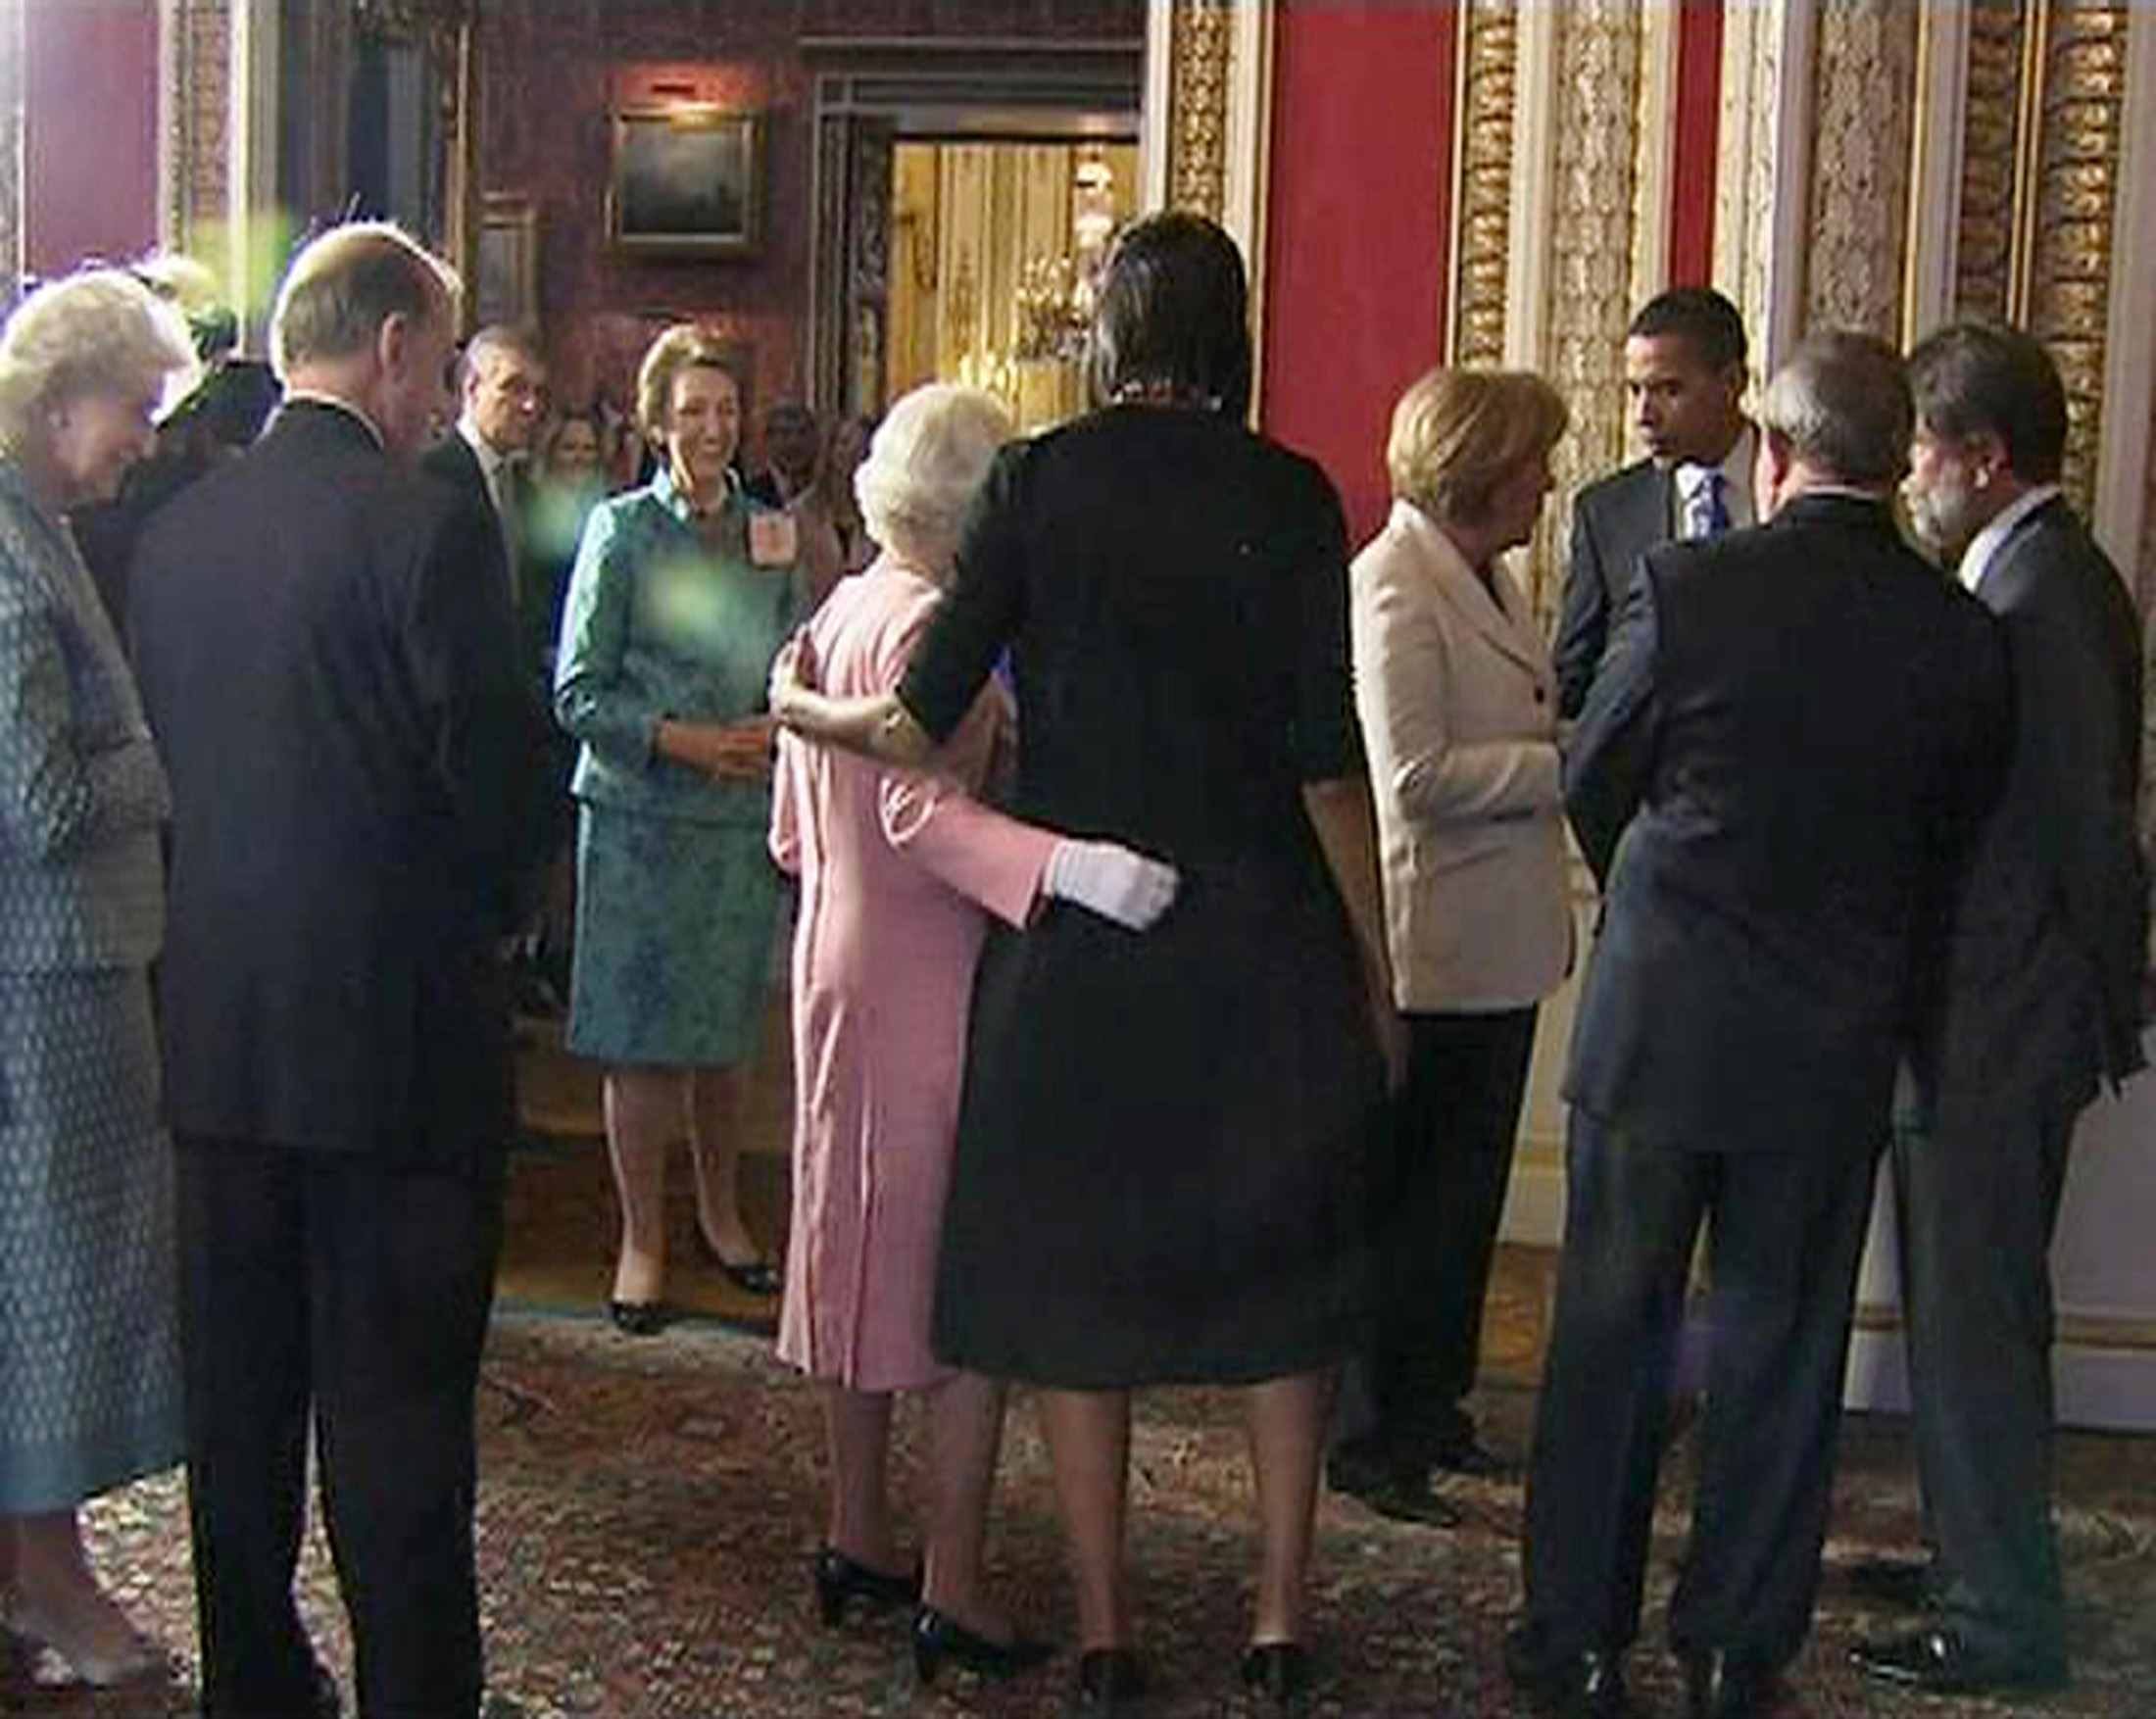 A video grab from television footage shows U.S. first lady Michelle Obama standing with Britain's Queen Elizabeth during a reception for G20 leaders at Buckingham Palace in London, April 1, 2009.